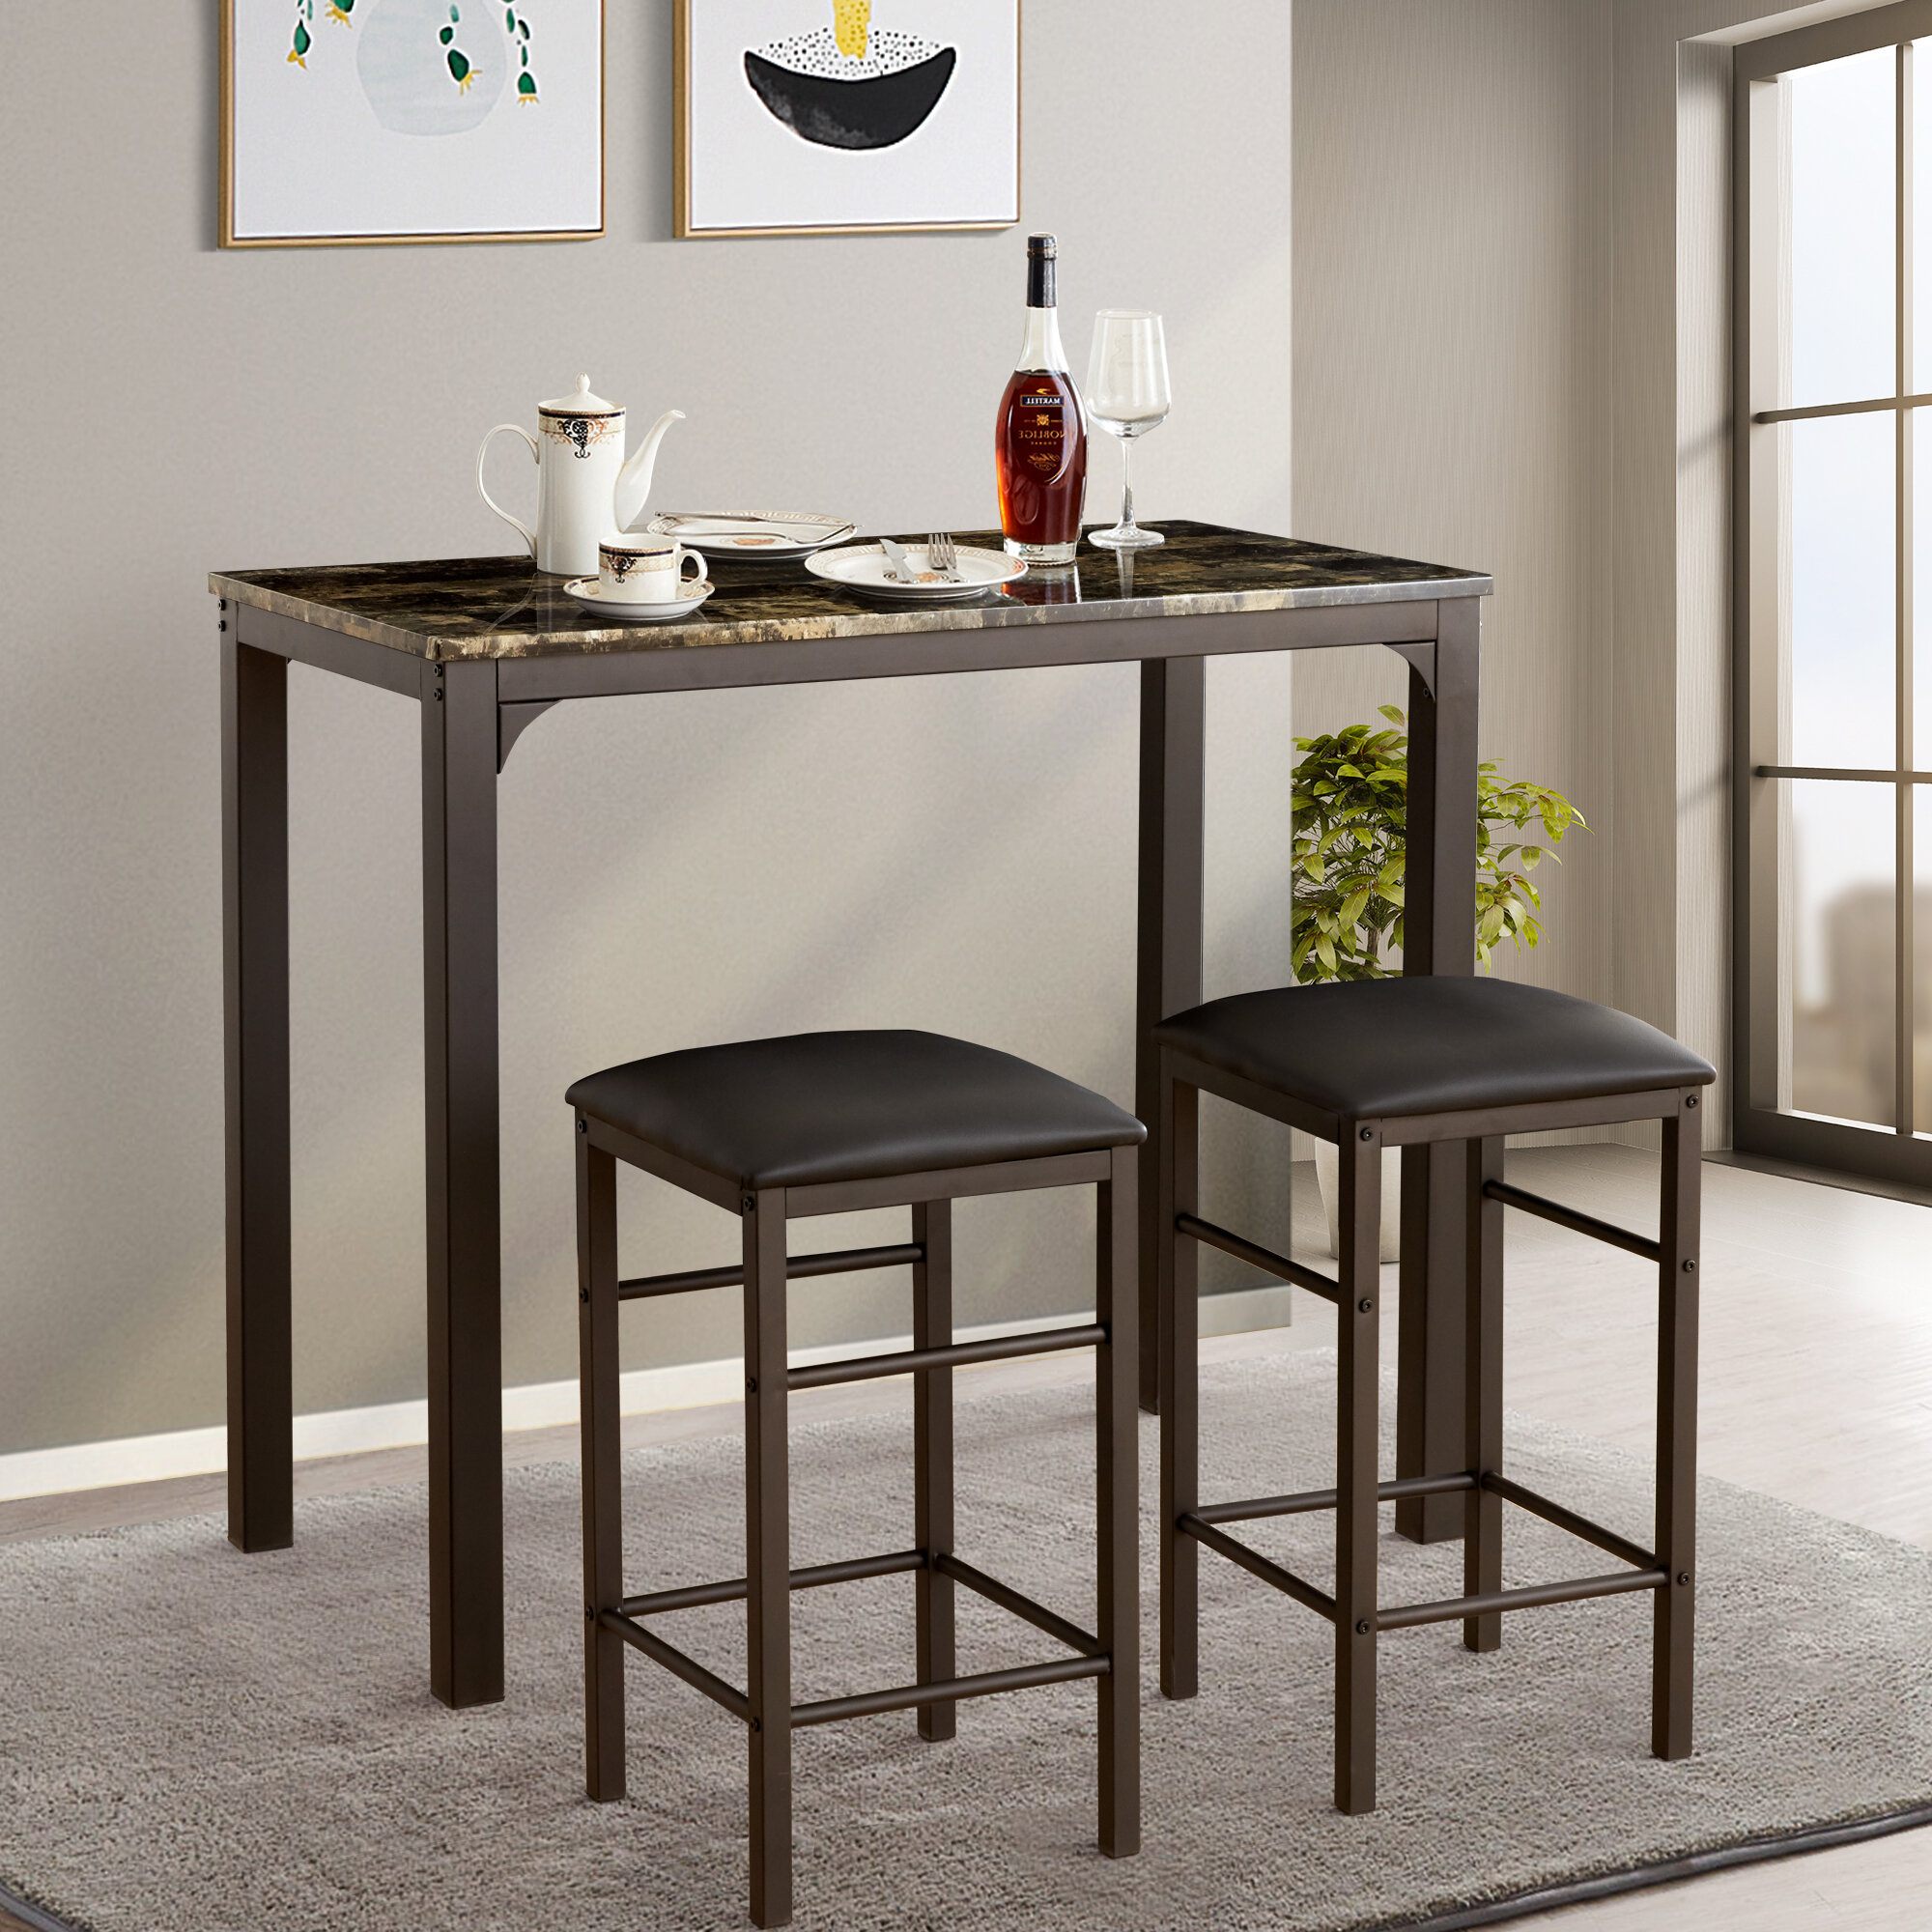 Tappahannock 3 Piece Counter Height Dining Set For Best And Newest Tappahannock 3 Piece Counter Height Dining Sets (Photo 1 of 20)